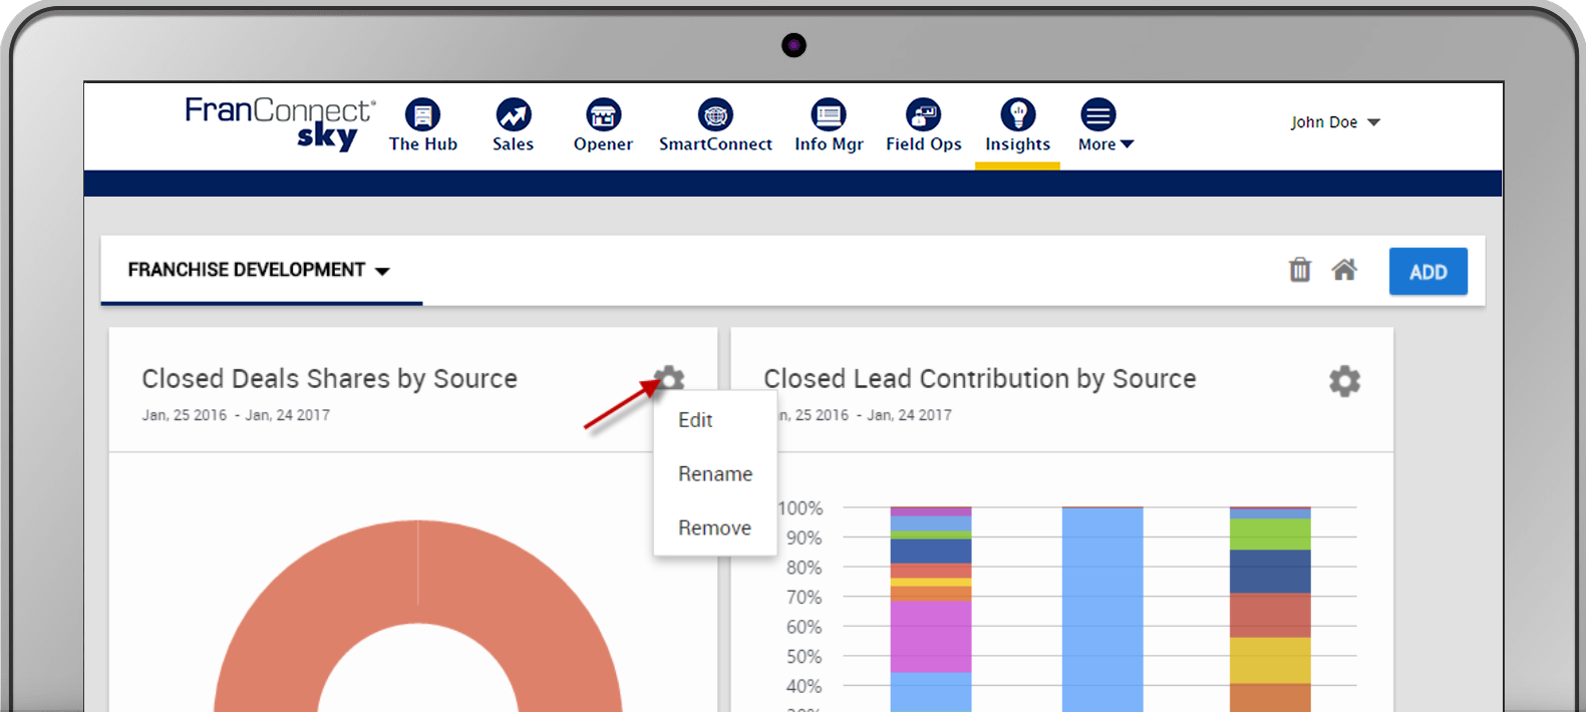 FranConnect Sky Insights is a business intelligence tool created for franchise systems.